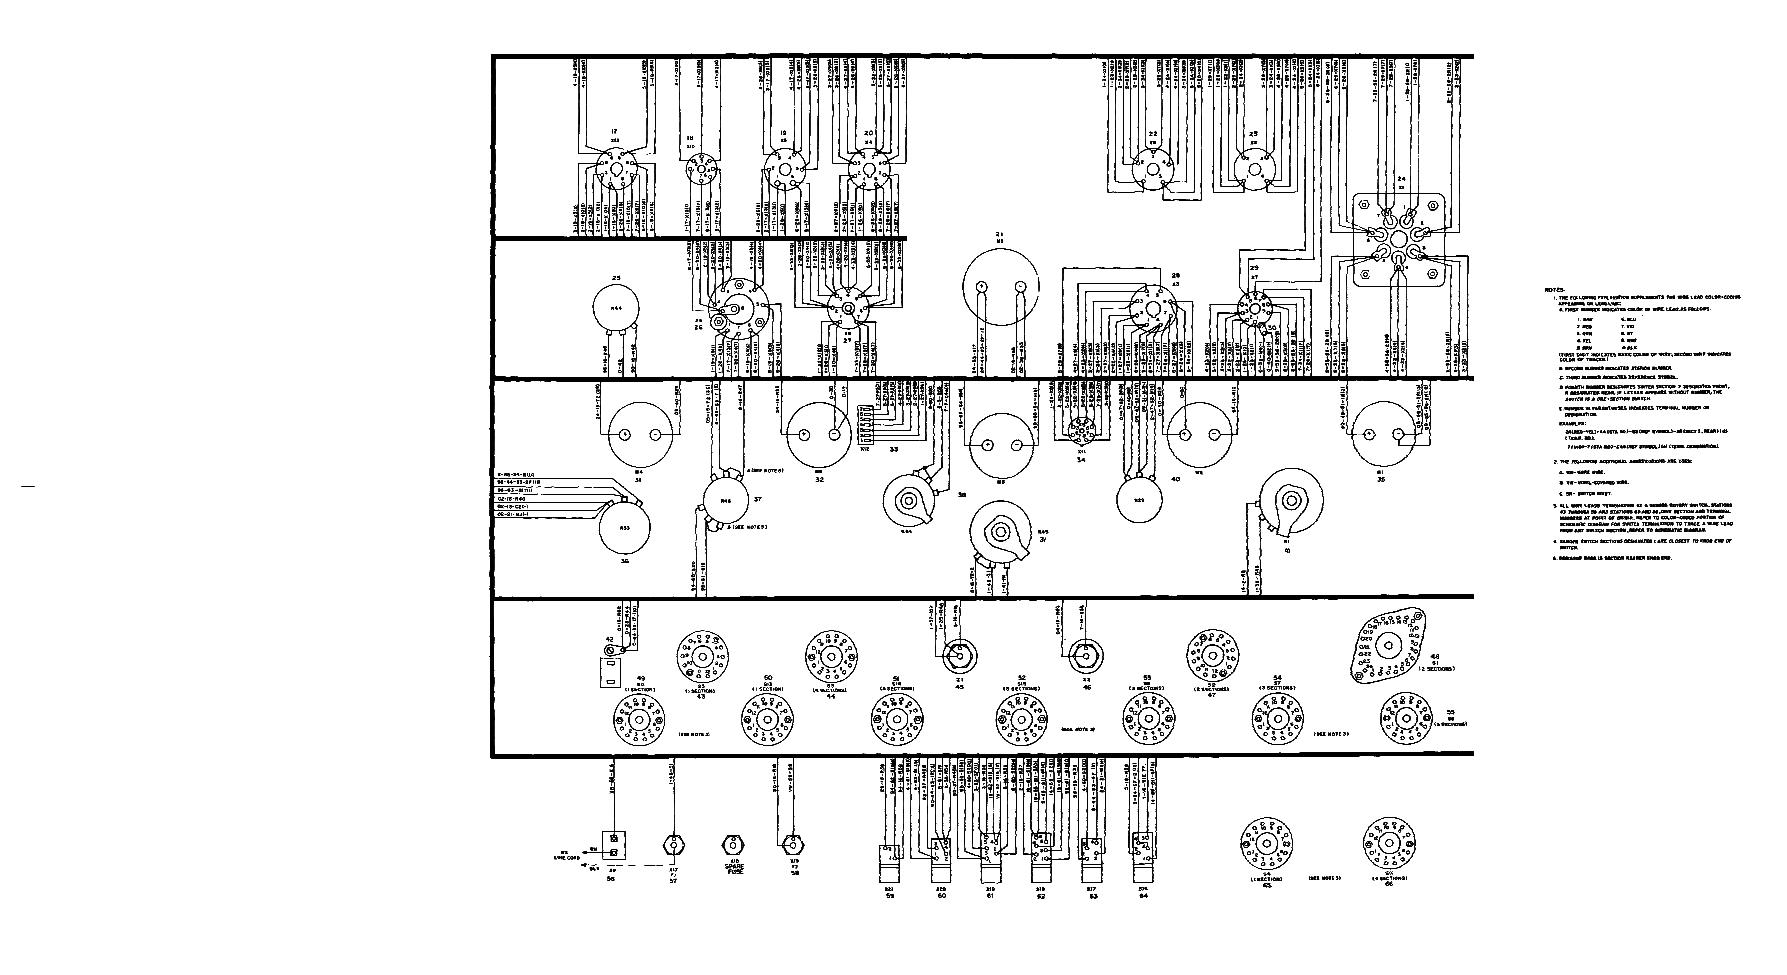 Figure 28 Electron Tube Tv 2 U Control And Instrument Panel Wiring Diagram